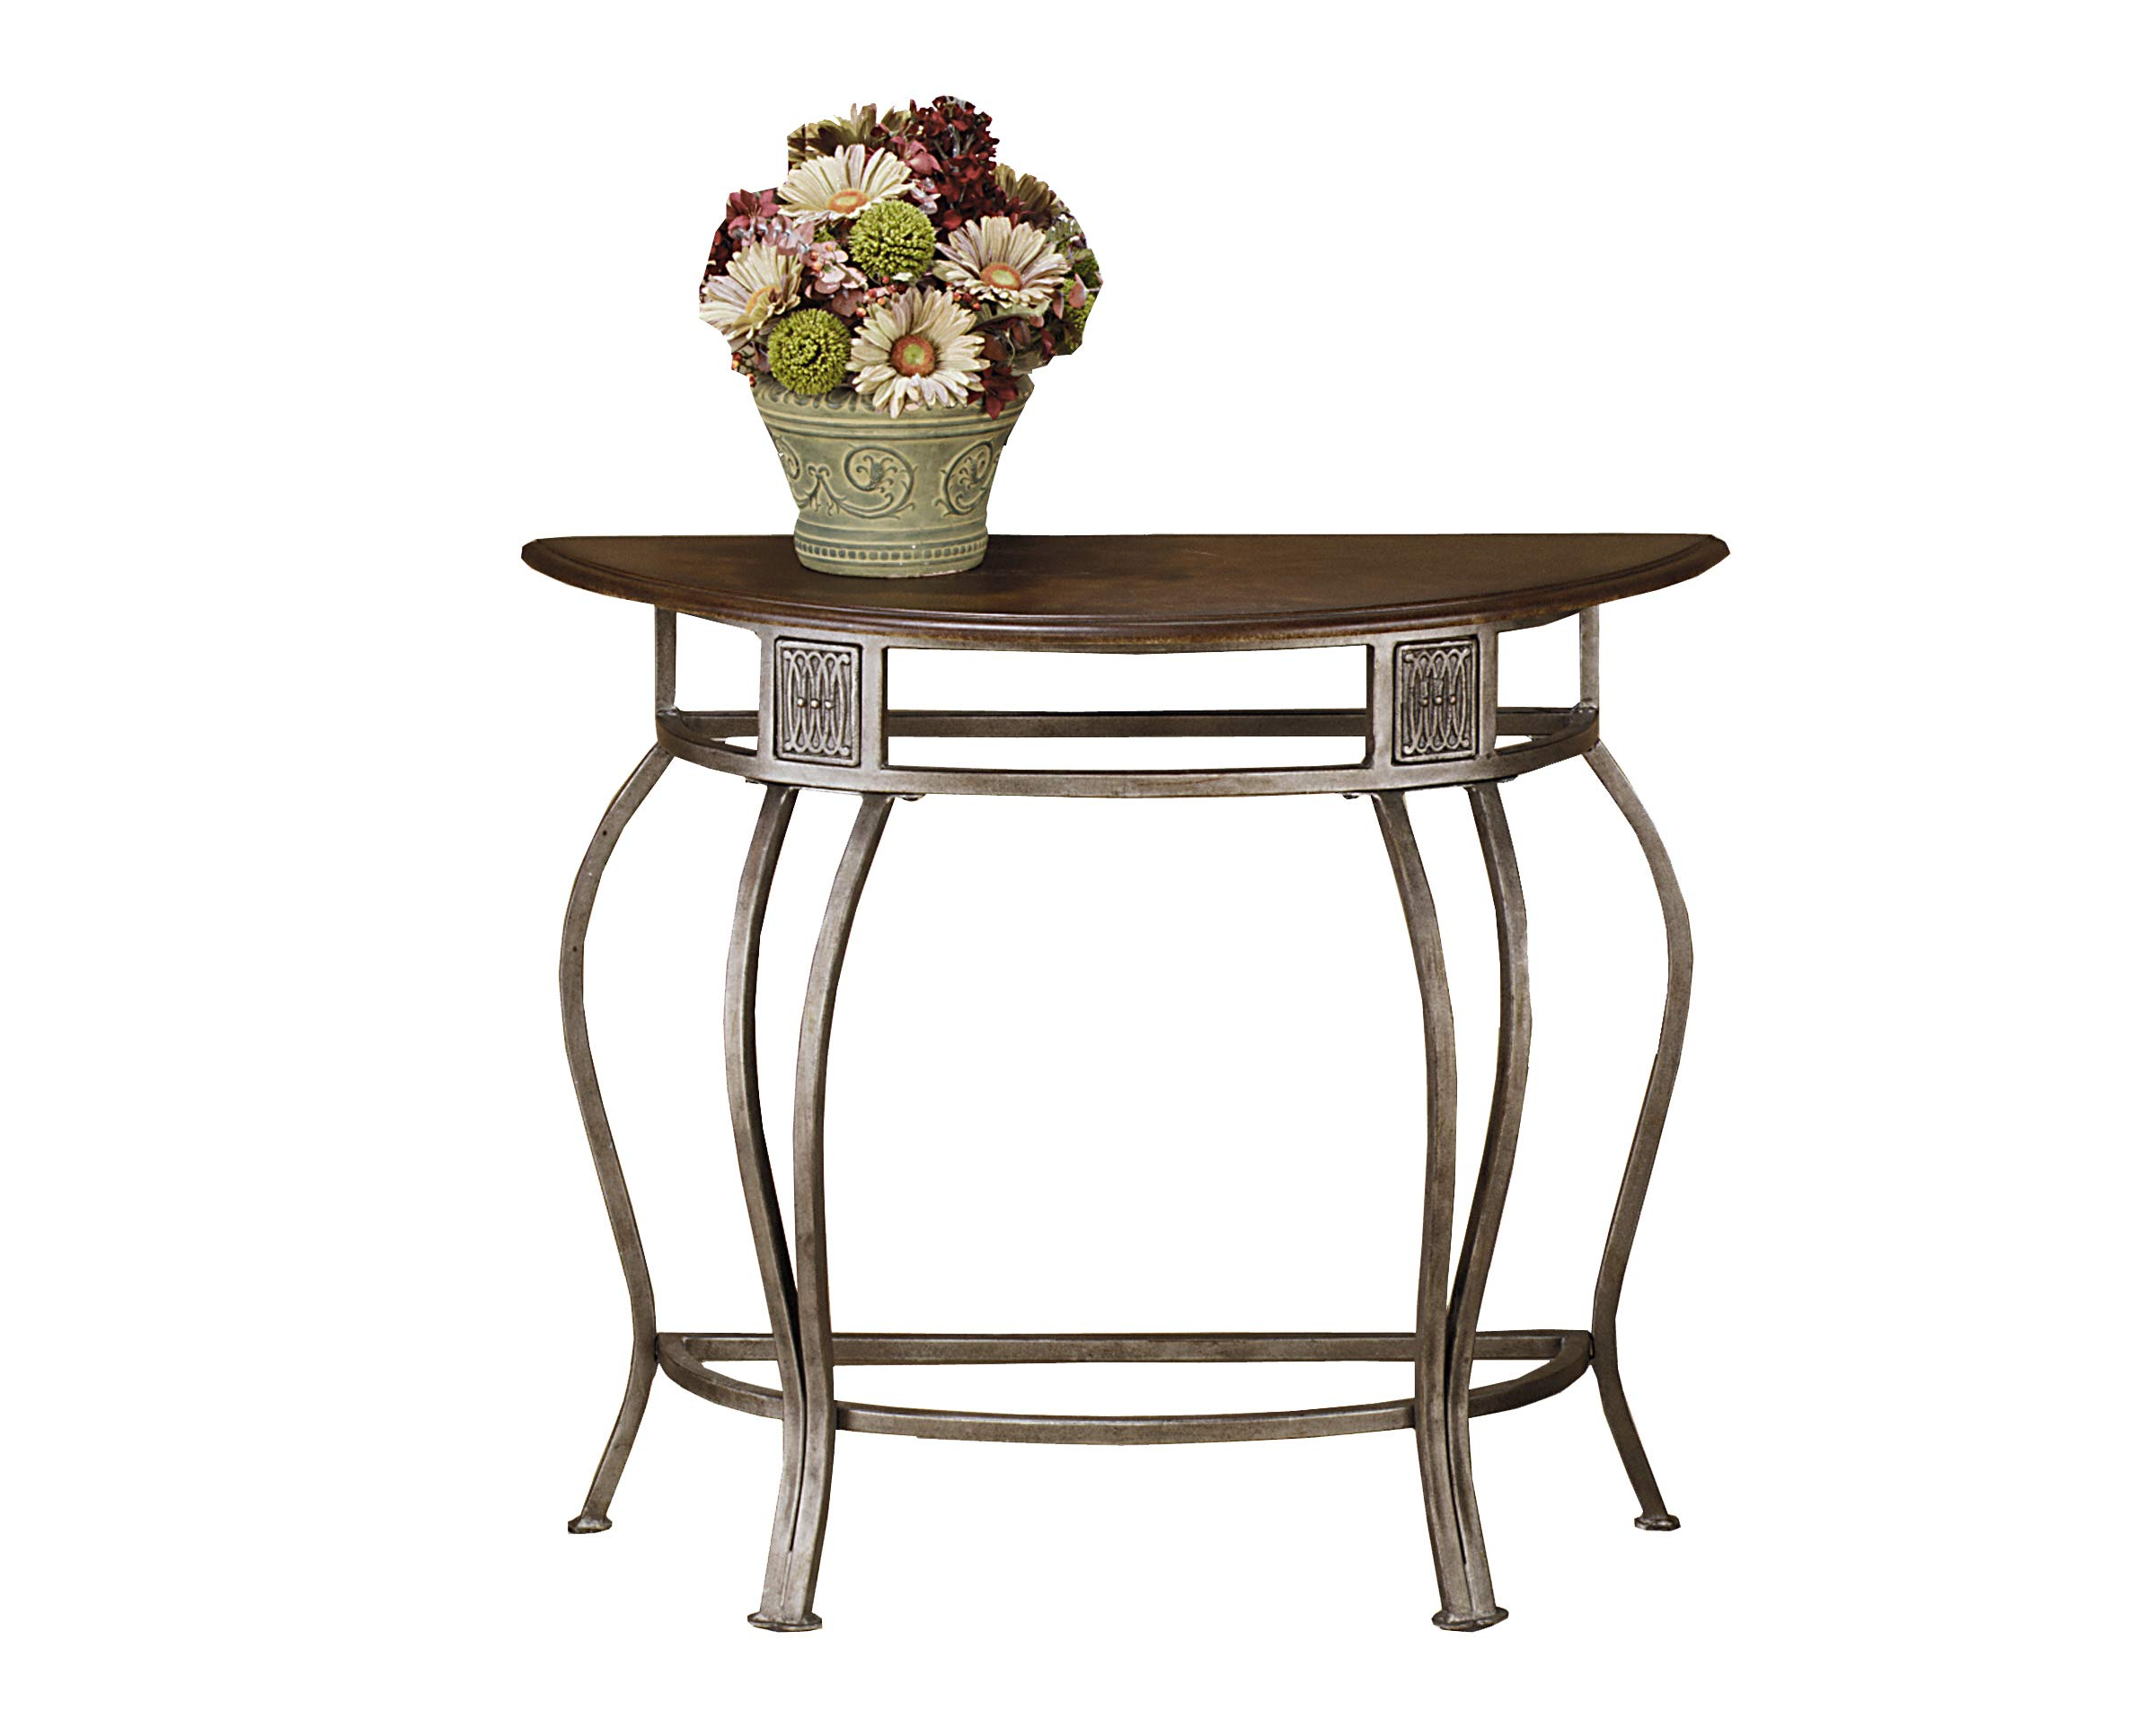 Hillsdale Montello Metal Console Table with Faux Leather Wood Top, Old Steel